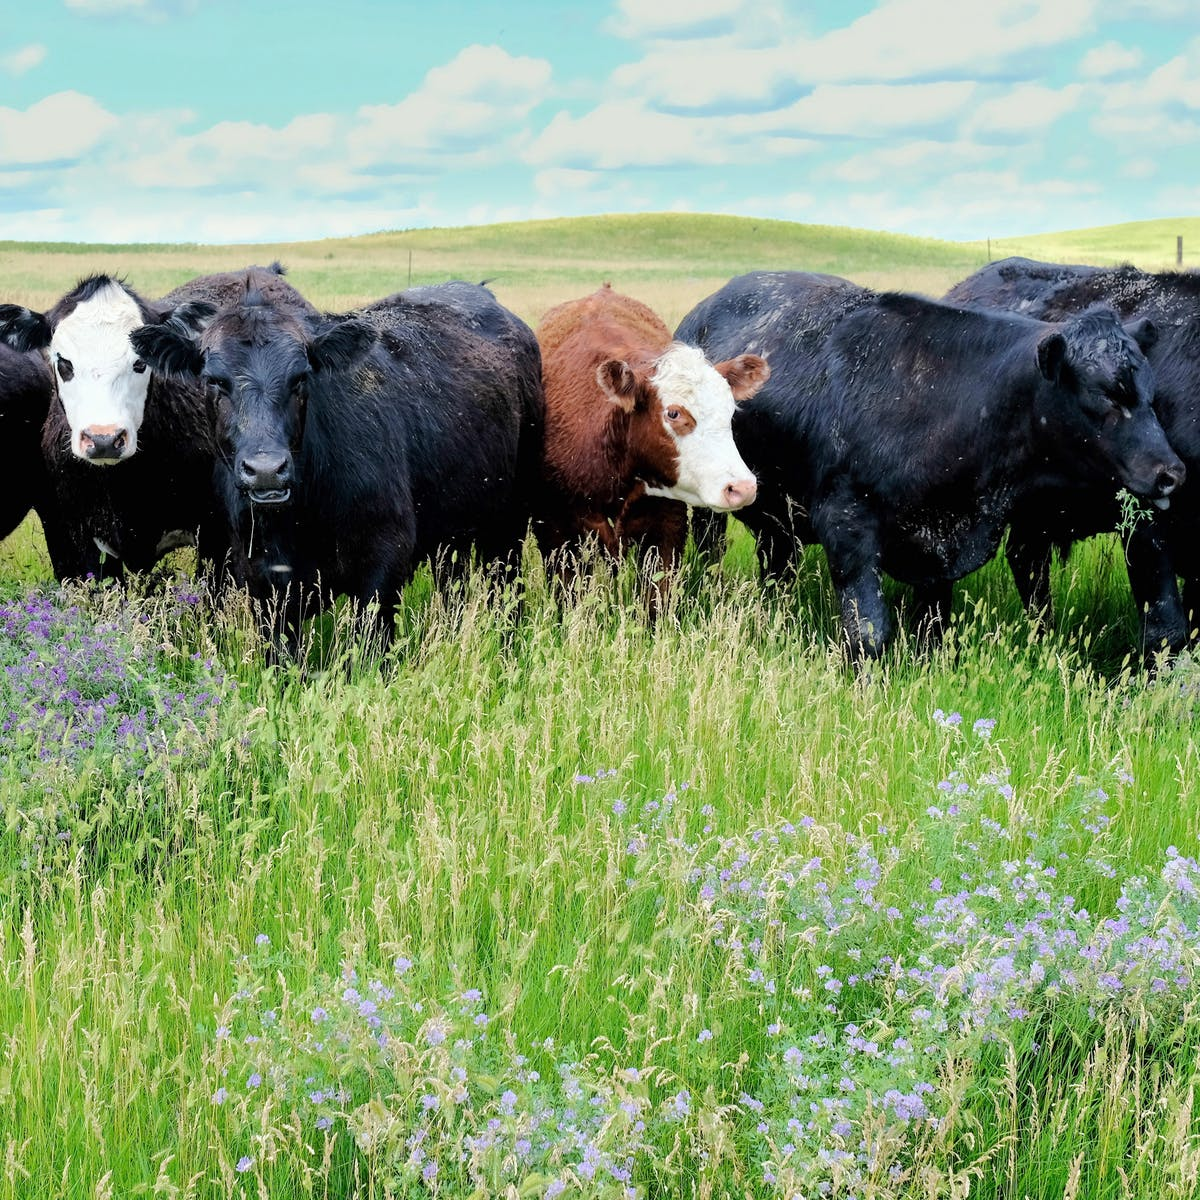 Regenerative agriculture can make farmers stewards of the land again